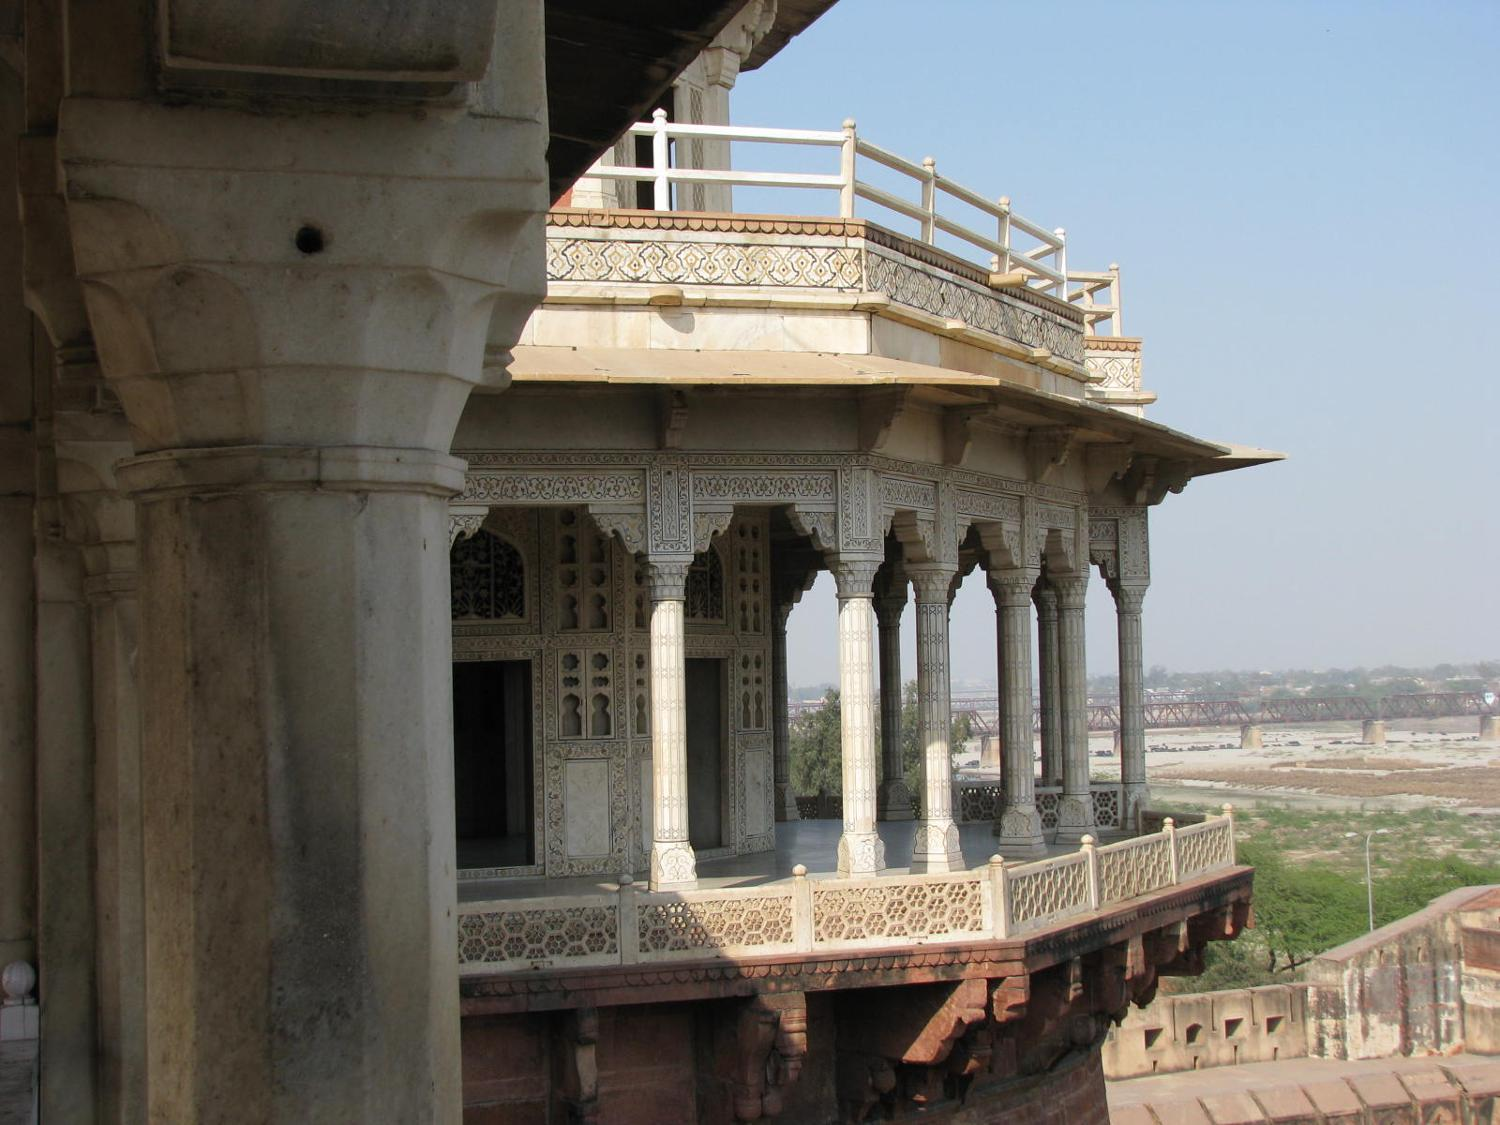 A pillared porch overlooking Agra Fort in India.  Agra, a walled palatial city, was home to several Mugal (Mughal or Mogul) emperors, including Humayun, Akbar, Jehangir, Shah Jahan, and Aurangzeb.